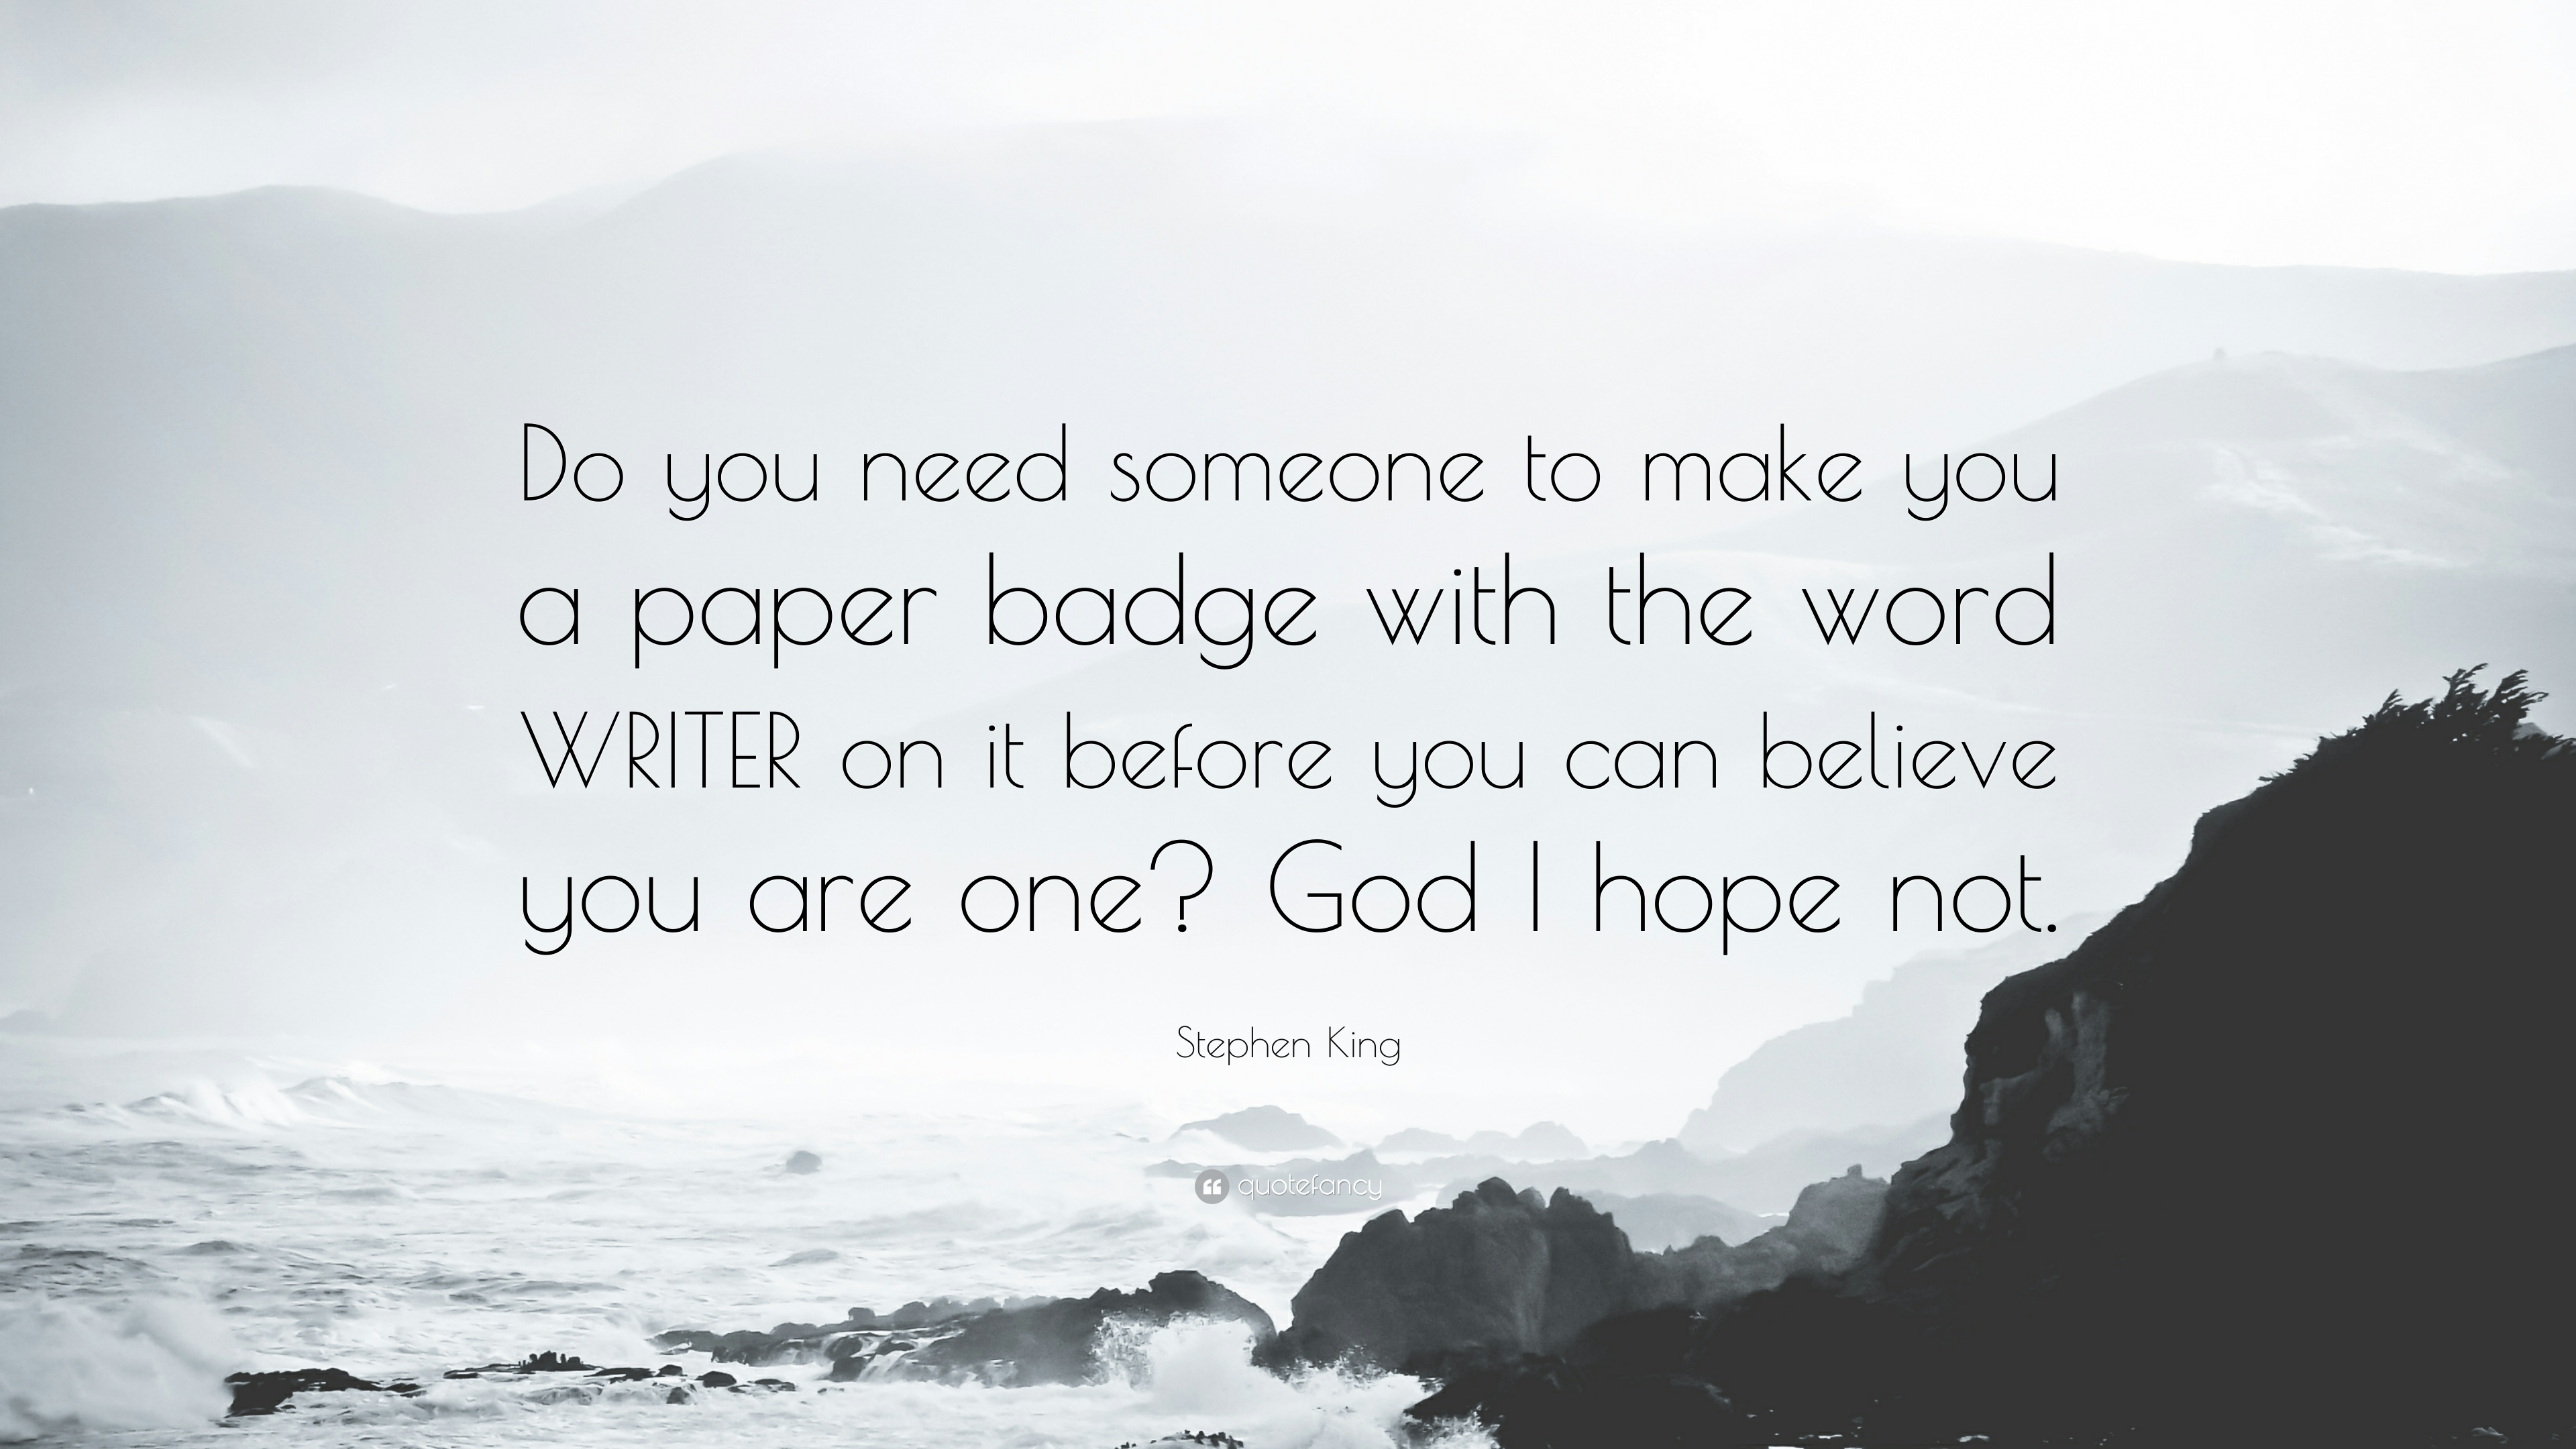 How to make someone believe in god